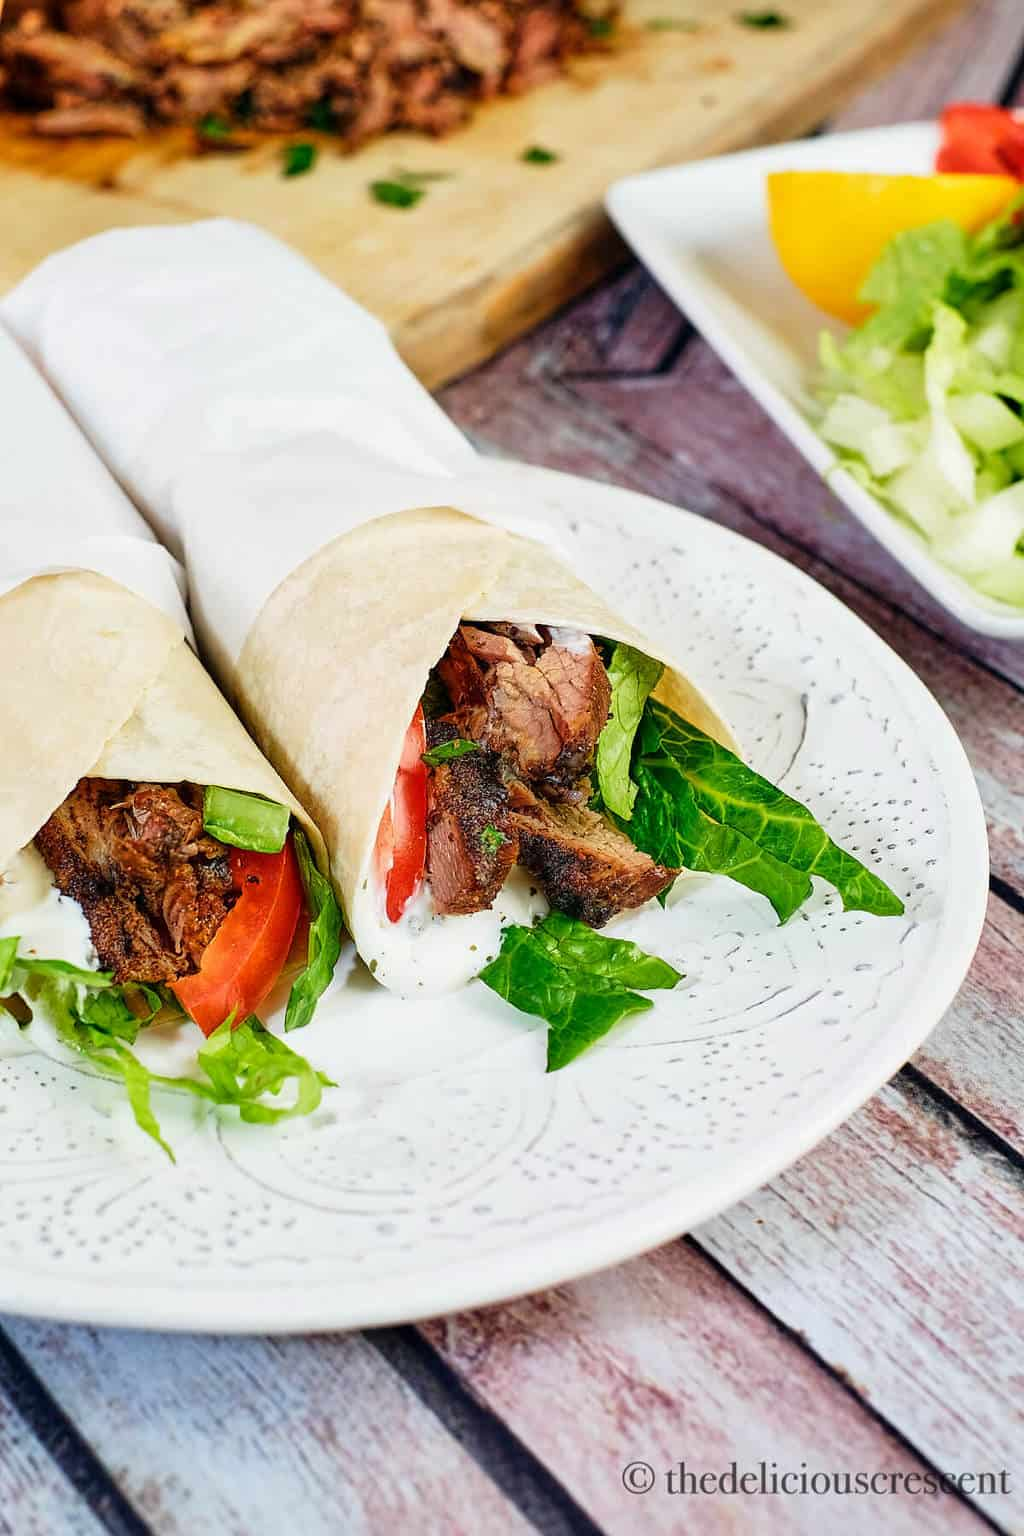 Close up view of wraps with roasted meat and vegetables.